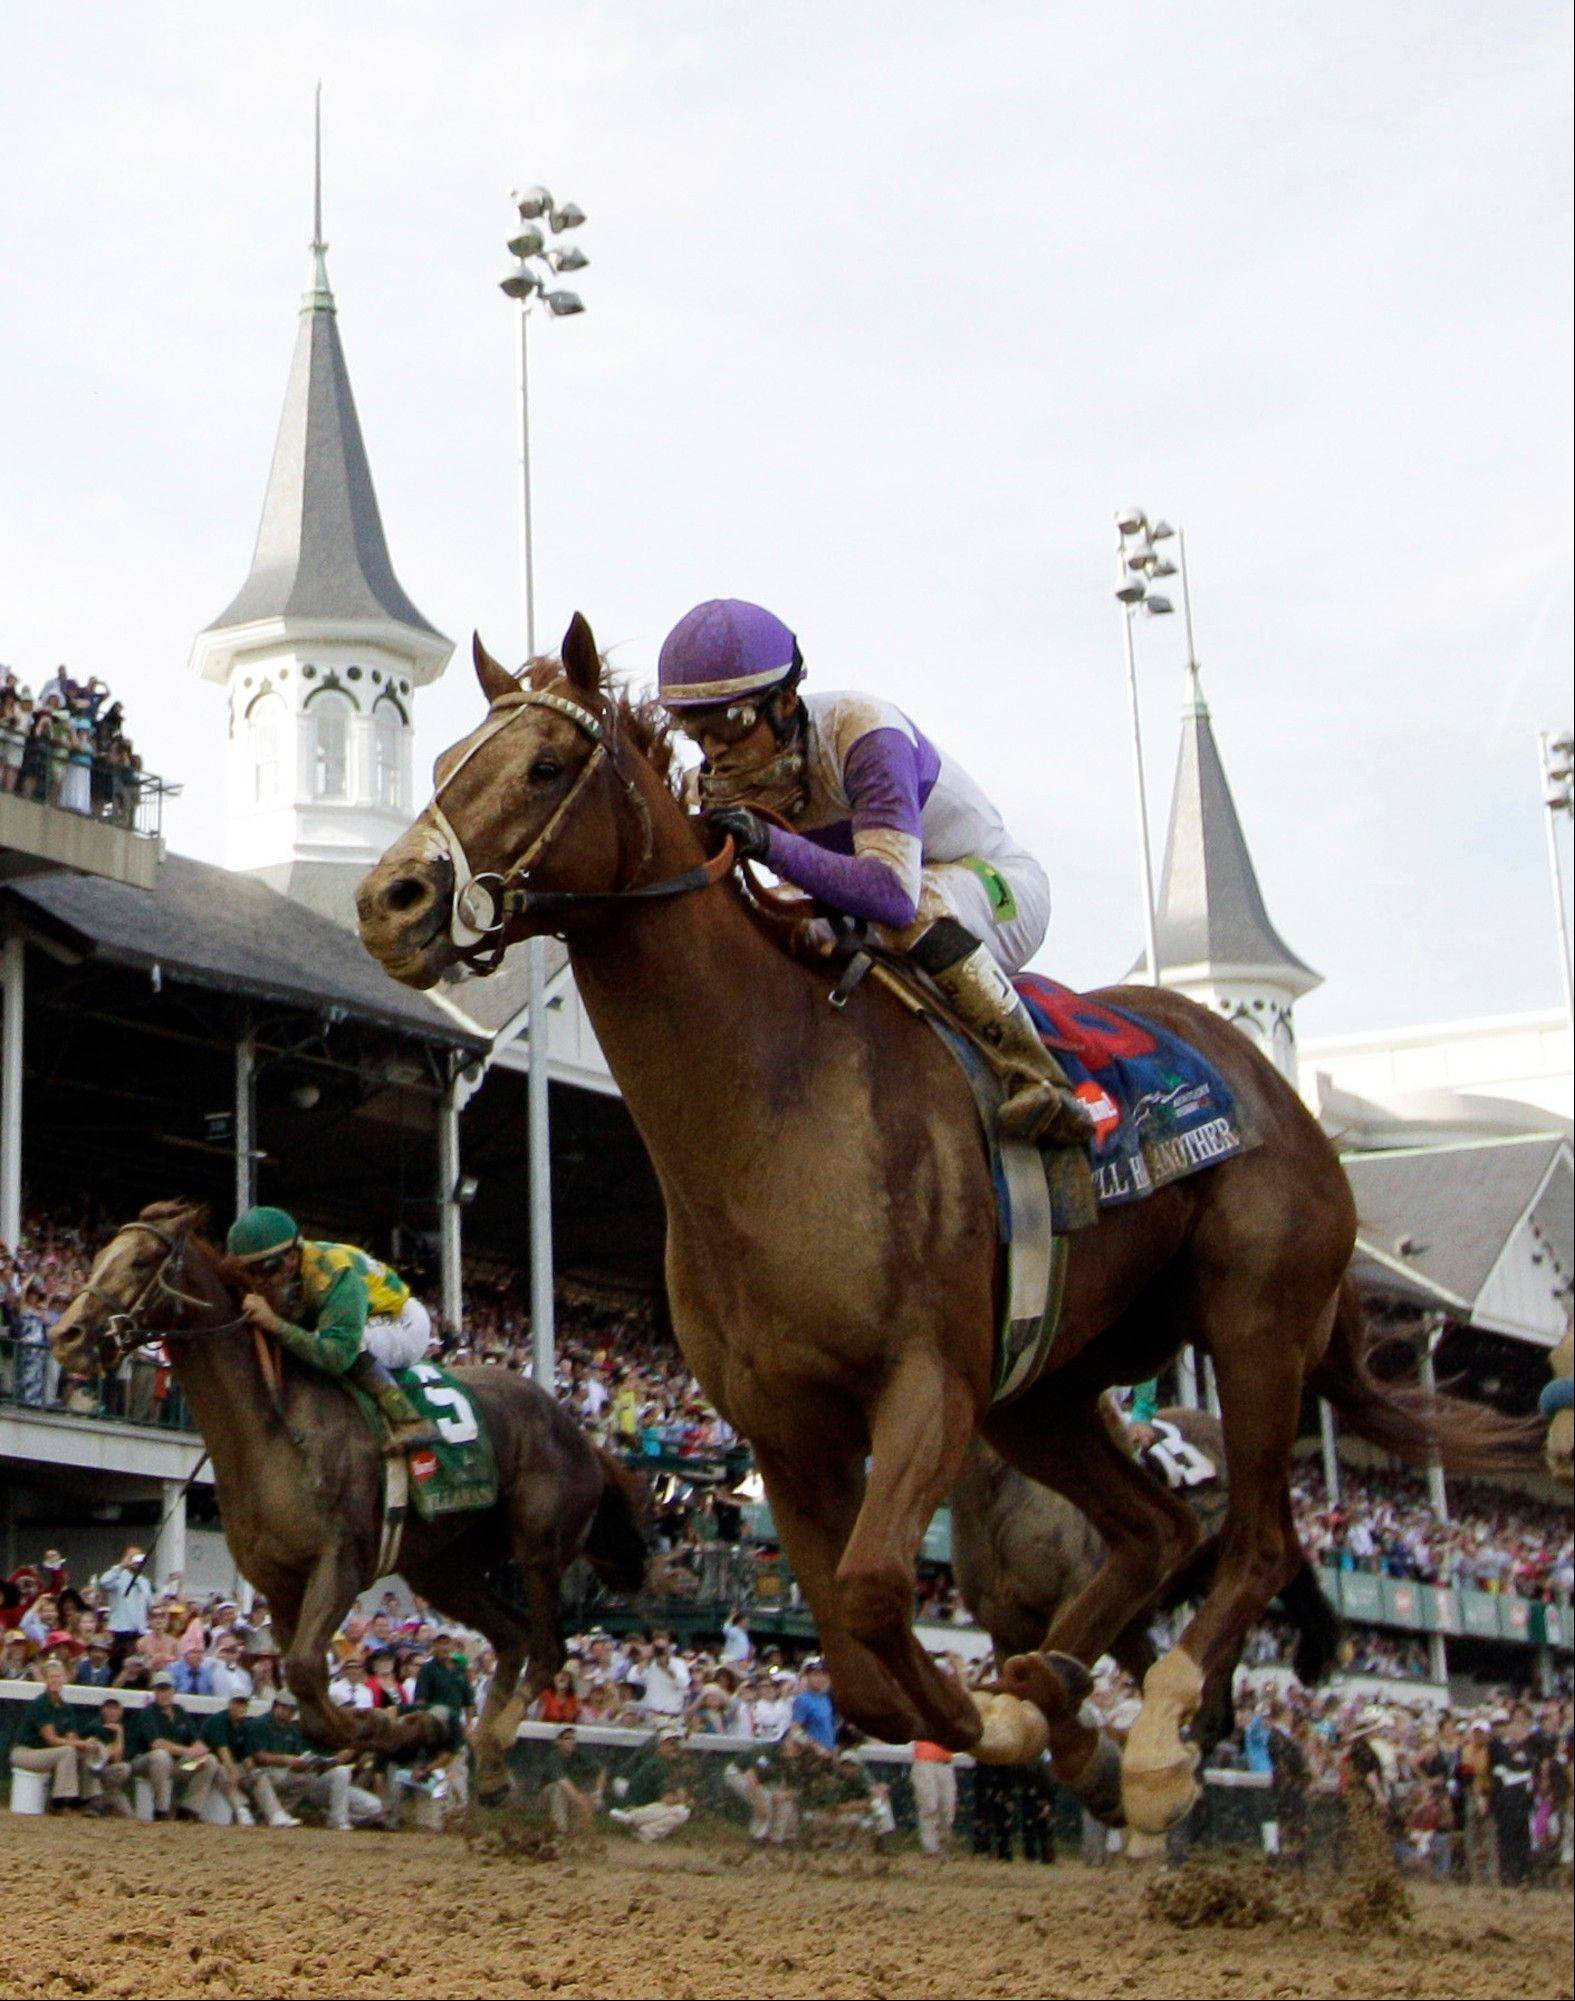 Associated Press/May 5, 2012 Jockey Mario Gutierrez rides I'll Have Another to victory in the 138th Kentucky Derby horse race at Churchill Downs, in Louisville, Ky. Churchill Downs is actively seeking new investments as well as casino gambling at its Louisville and Arlington Heights tracks.